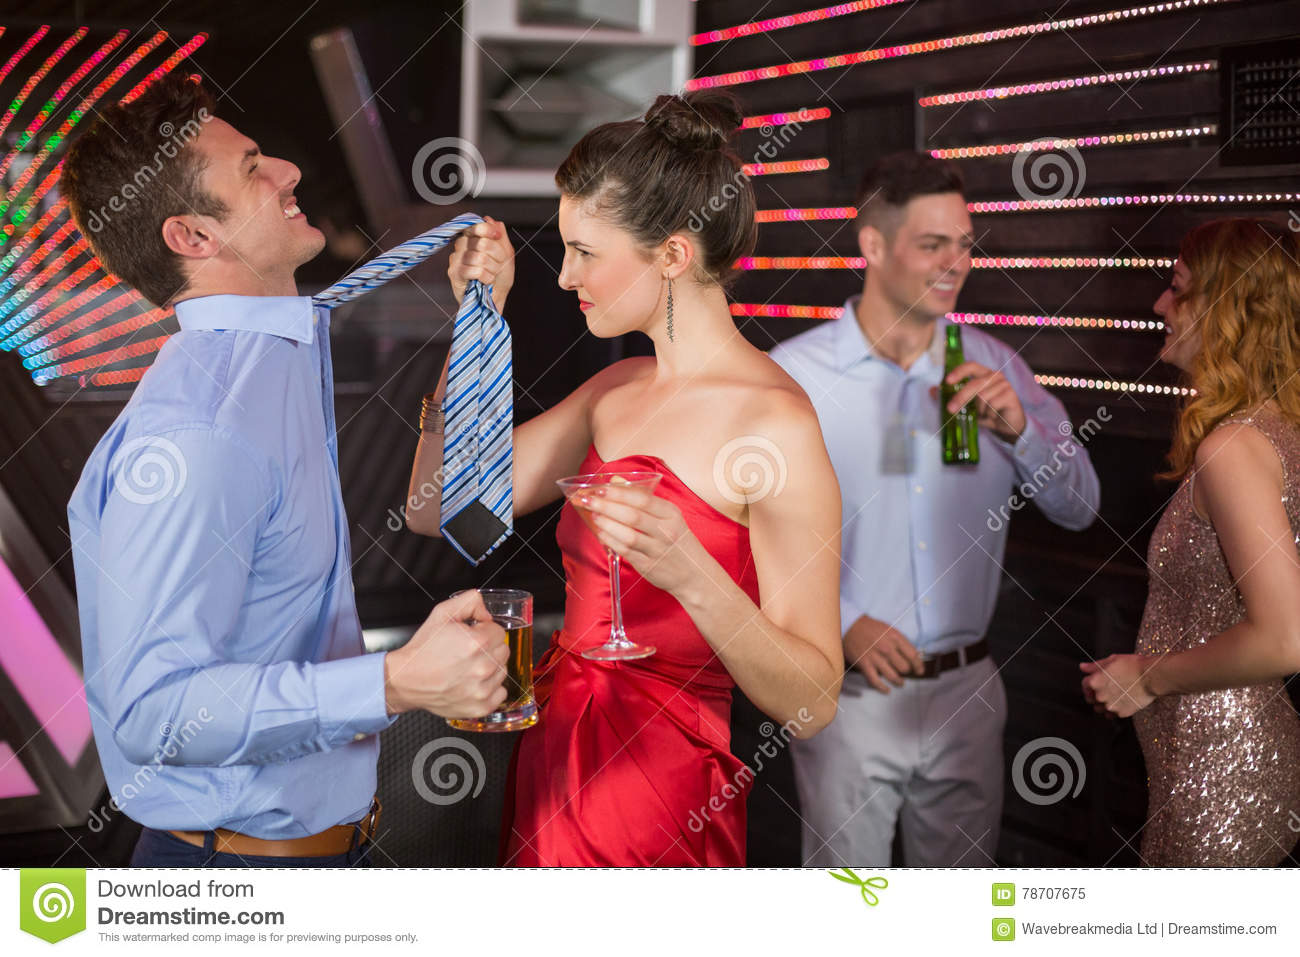 Couple having fun while having glass of beer and cocktail